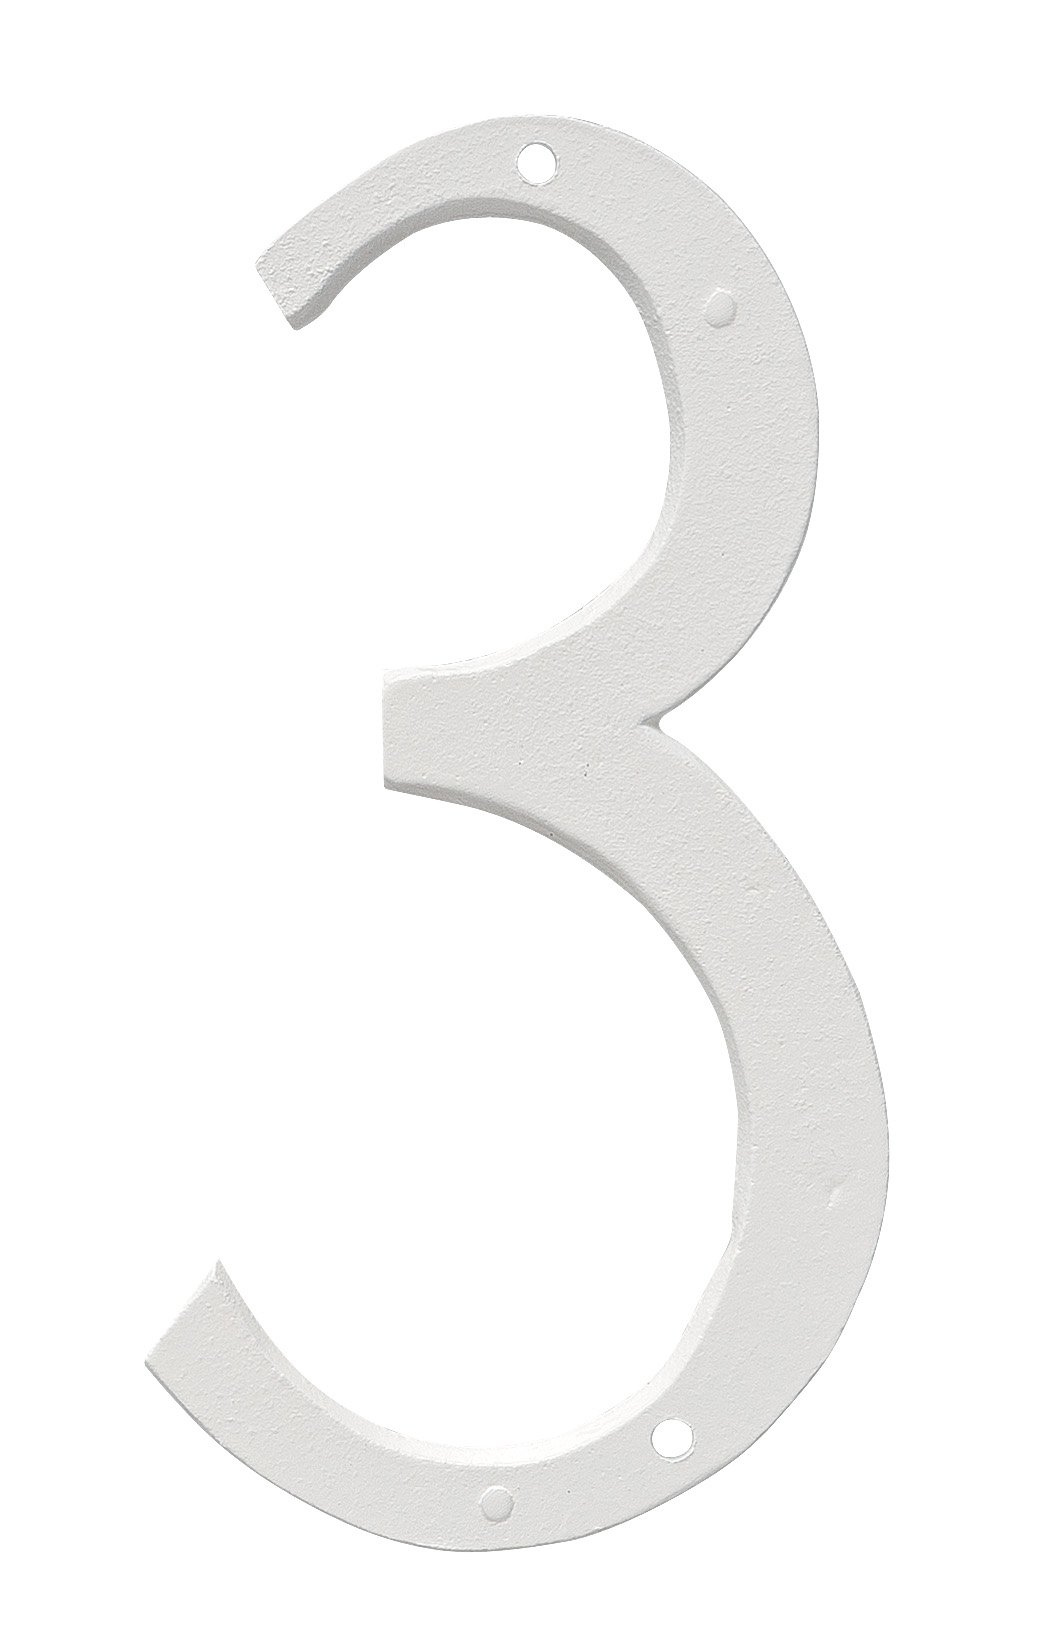 Montague Metal Products CSHN-12-3-W Aluminum House Number 3 Outdoor Plaque, Medium, White